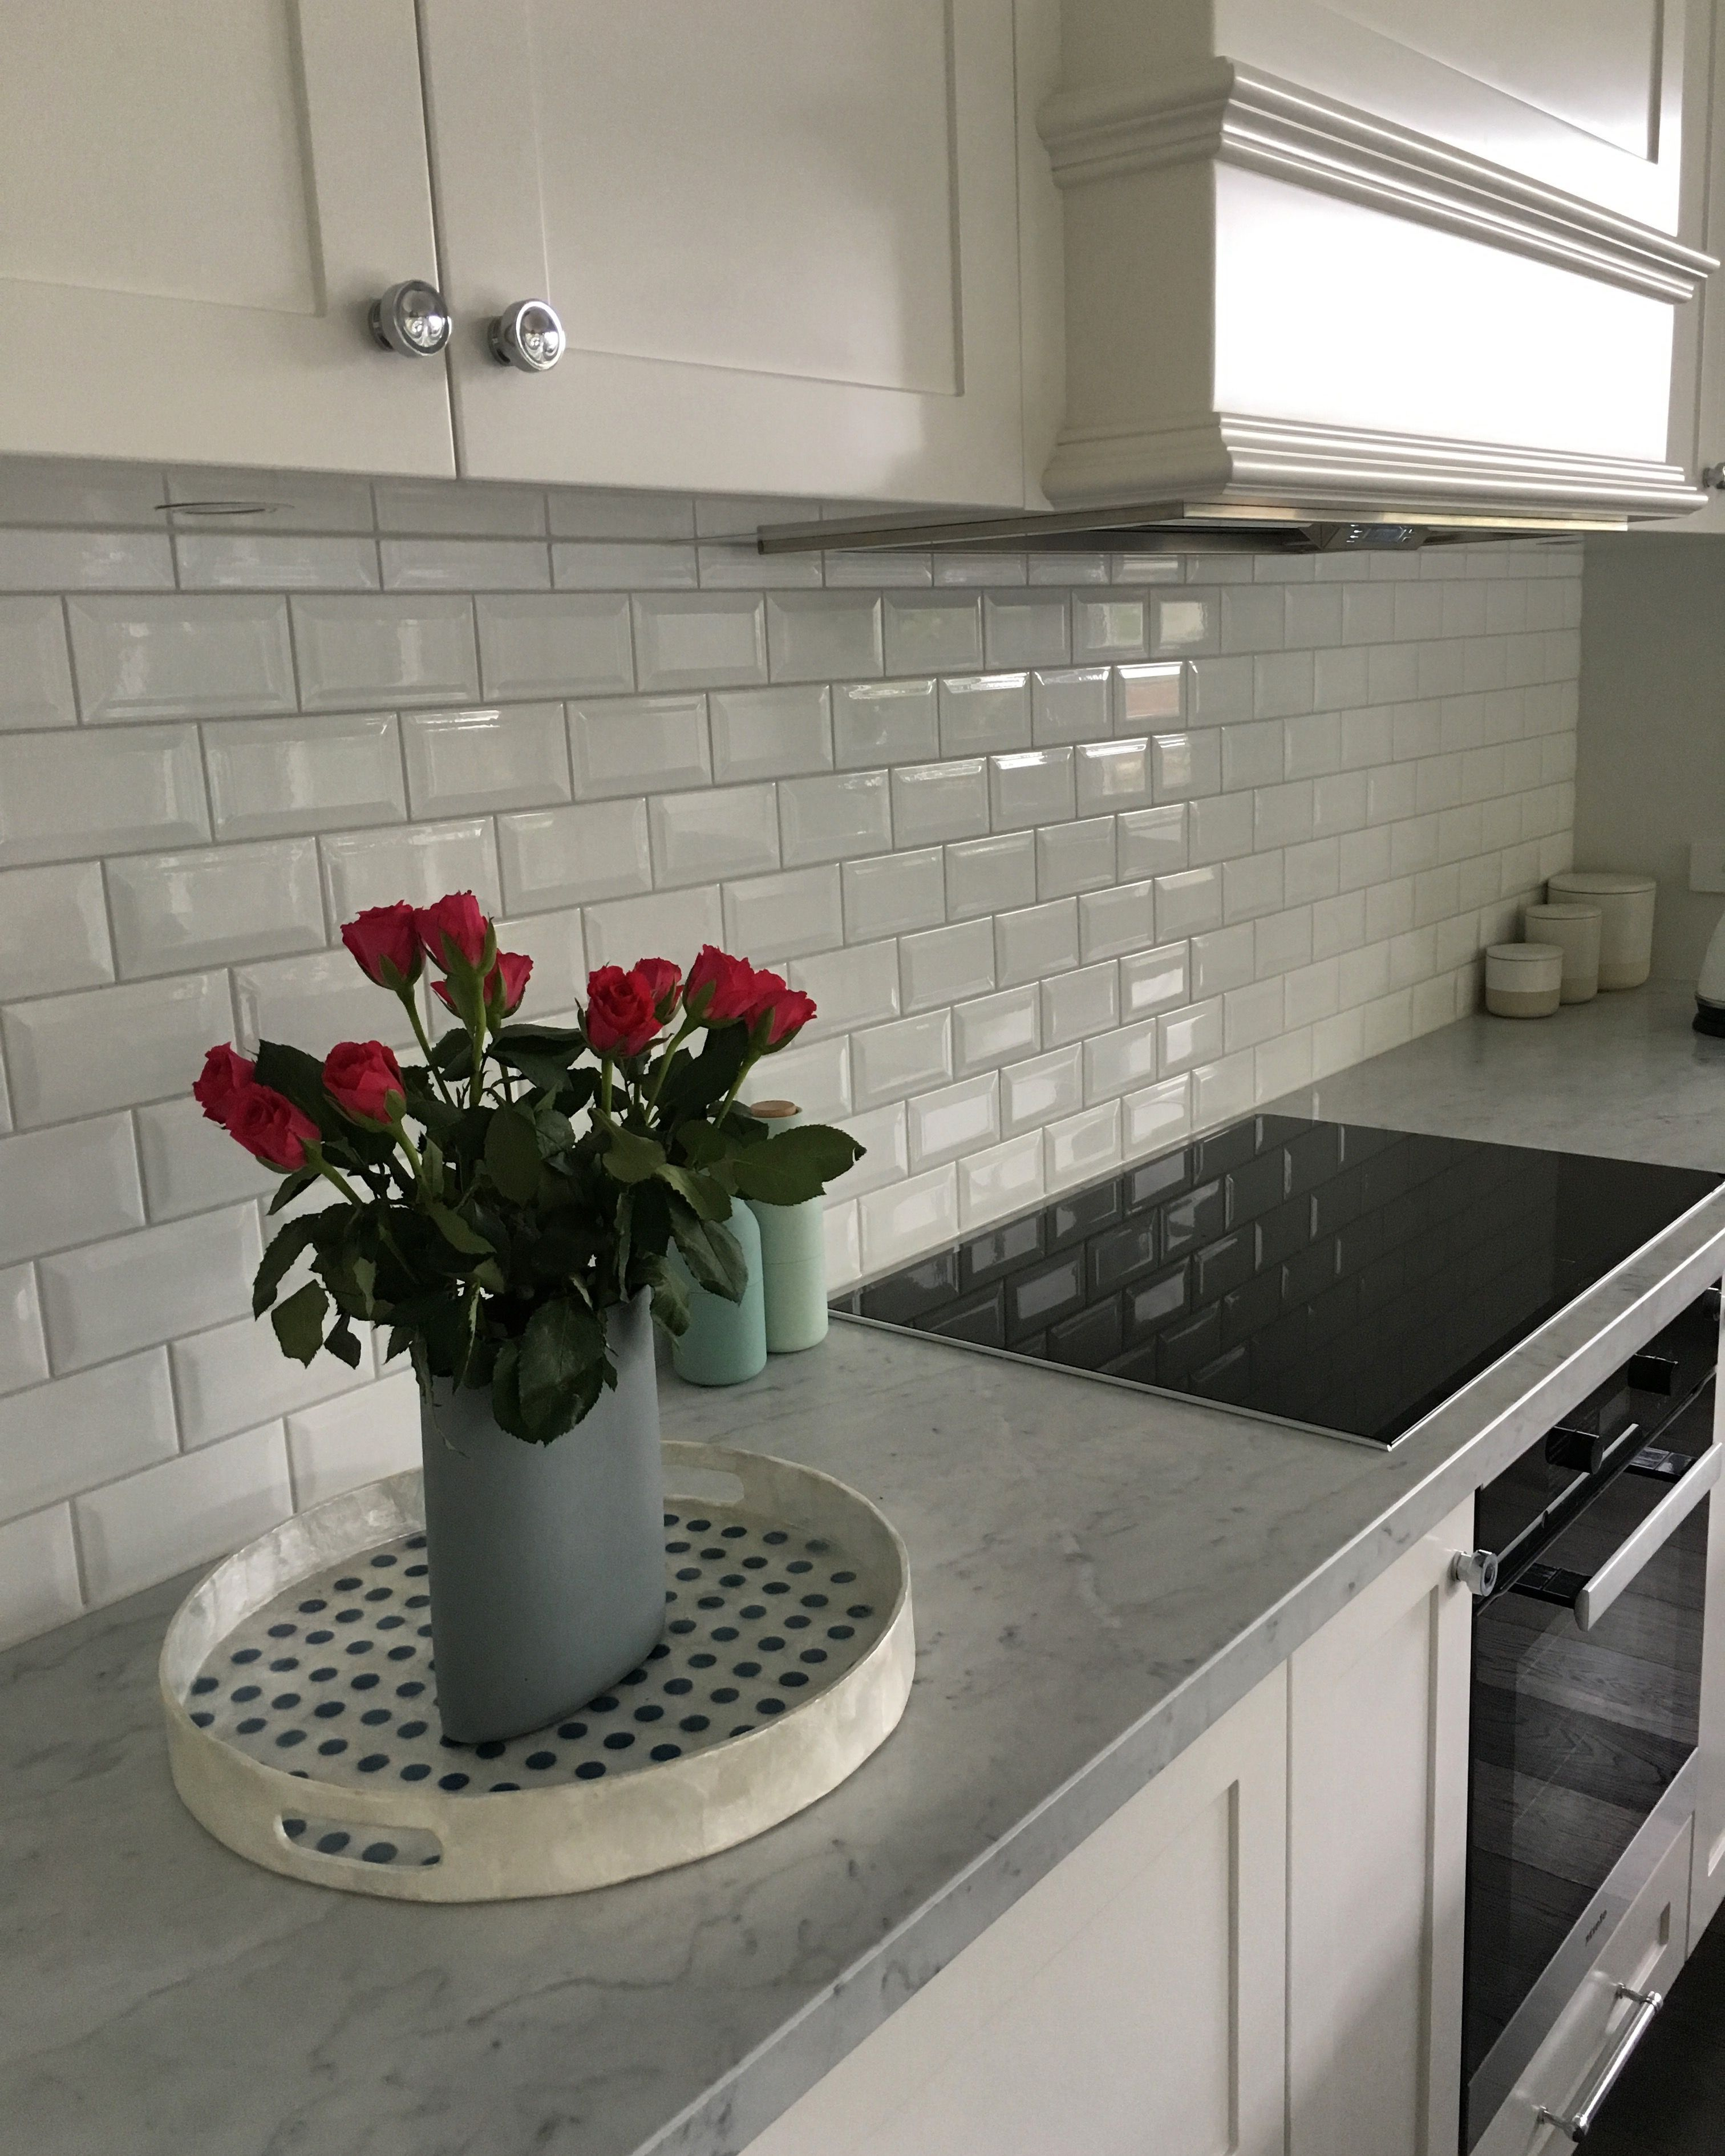 Sure Subway Tile Is Classic And Easy But It Is Yawn Everywhere Want A Simila In 2021 Beveled Subway Tile Beveled Subway Tile Kitchen Beveled Subway Tile Backsplash